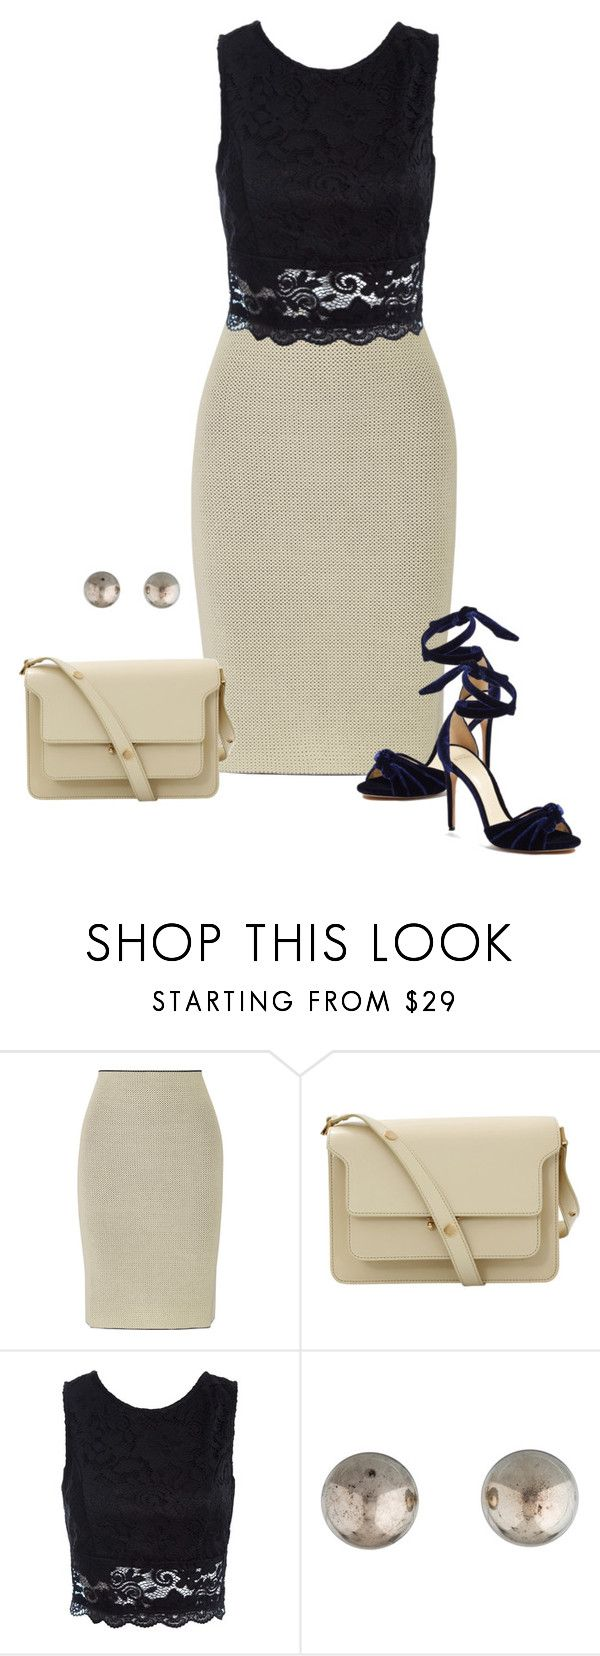 """""""Sem título #665"""" by soniamazeto ❤ liked on Polyvore featuring Calvin Klein Collection, Marni, Sans Souci, Tiffany & Co. and Alexandre Birman"""